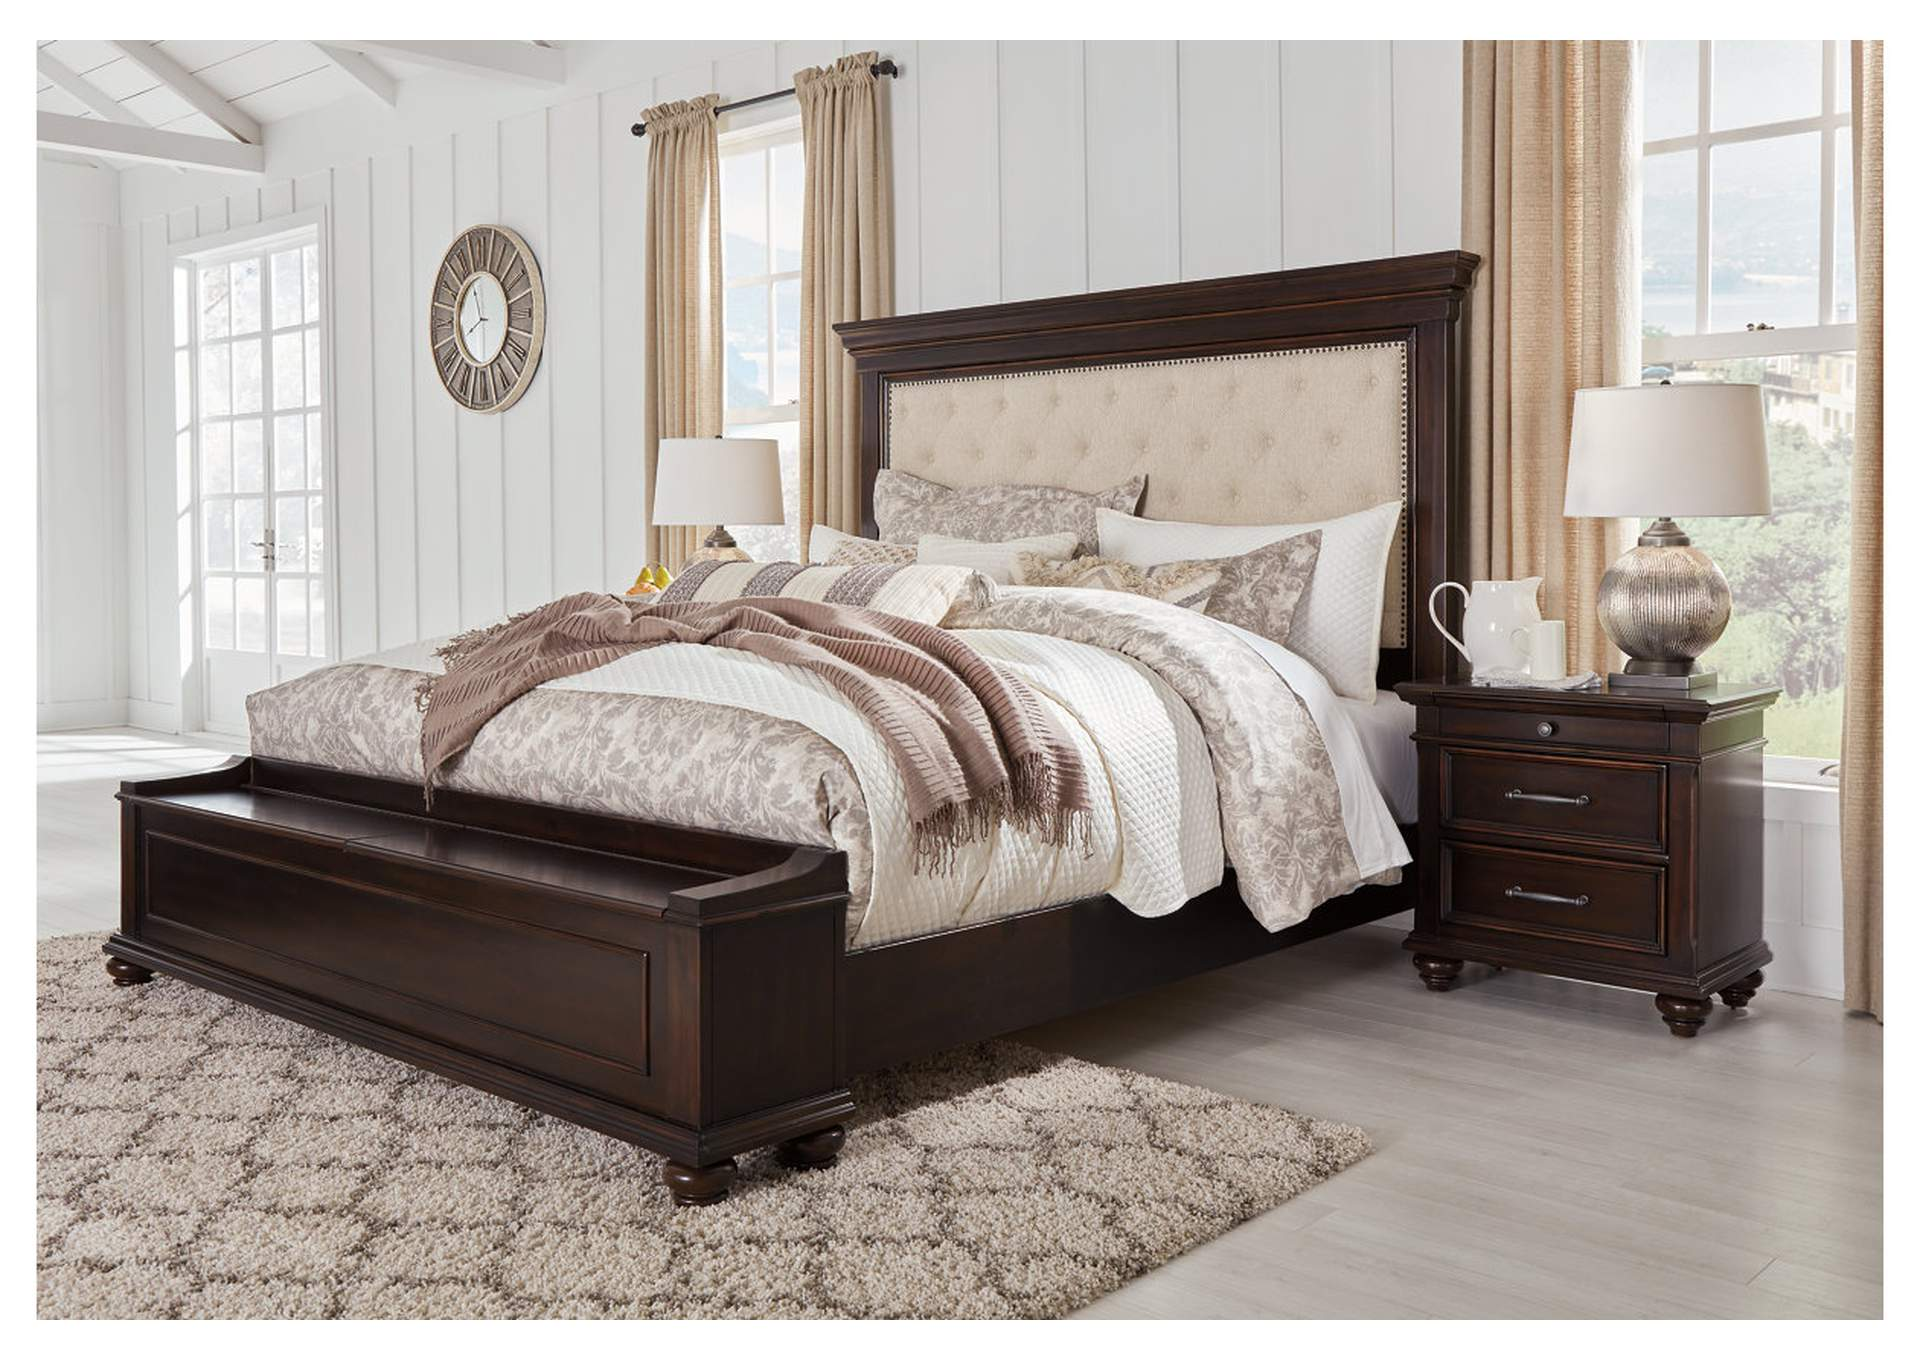 Brynhurst Brown King Upholstered Storage Bed,Signature Design By Ashley